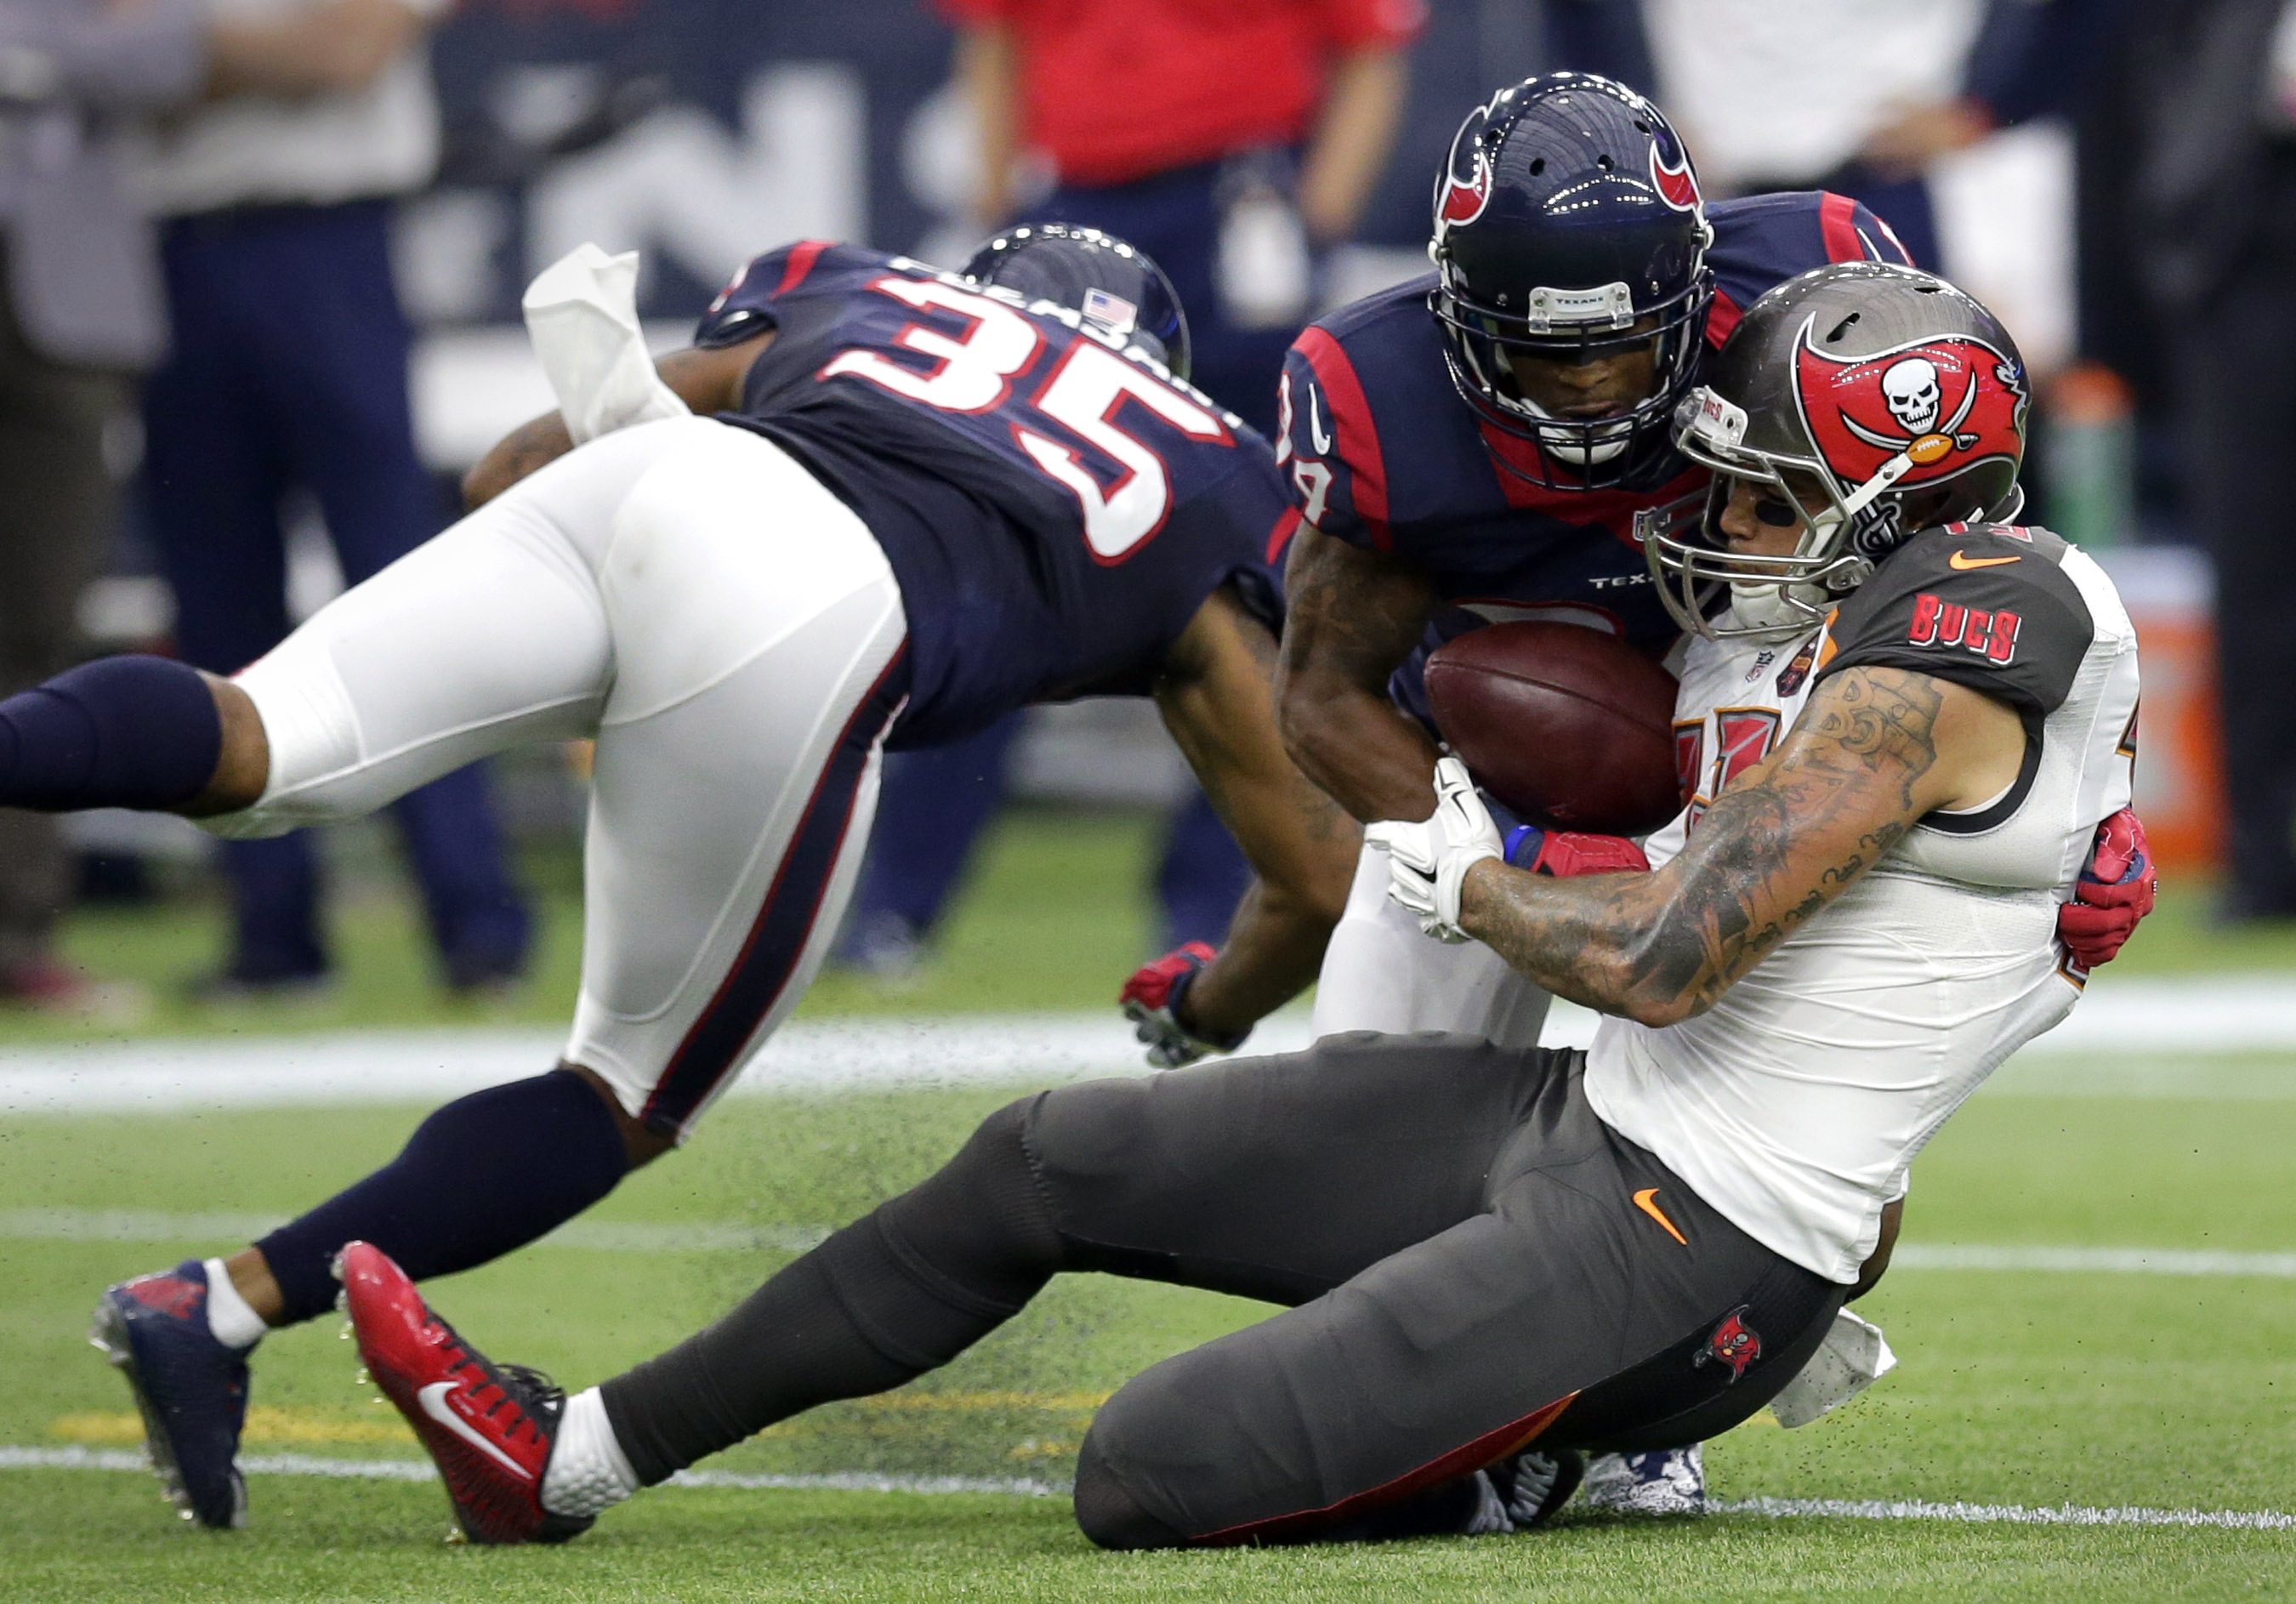 Houston Texans' Eddie Pleasant (35) and A.J. Bouye (34) break up a pass intended for Tampa Bay Buccaneers' Mike Evans, right, during the second half of an NFL football game Sunday, Sept. 27, 2015, in Houston. (AP Photo/David J. Phillip)